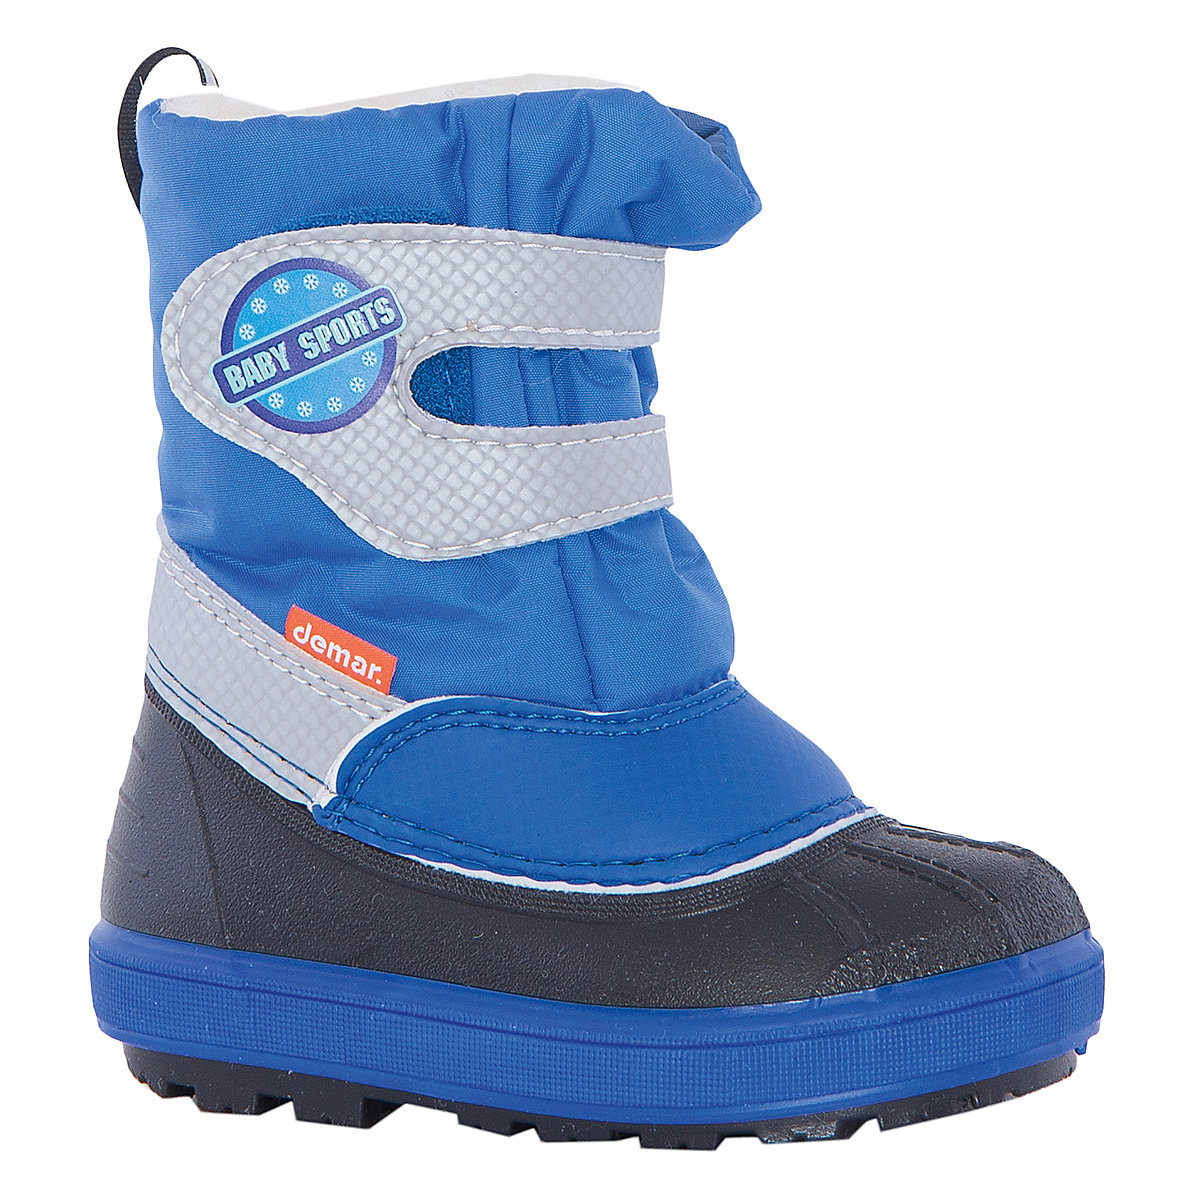 Boots Demar For Boys 6835009 Valenki Uggi Winter Baby Kids Children Shoes MTpromo